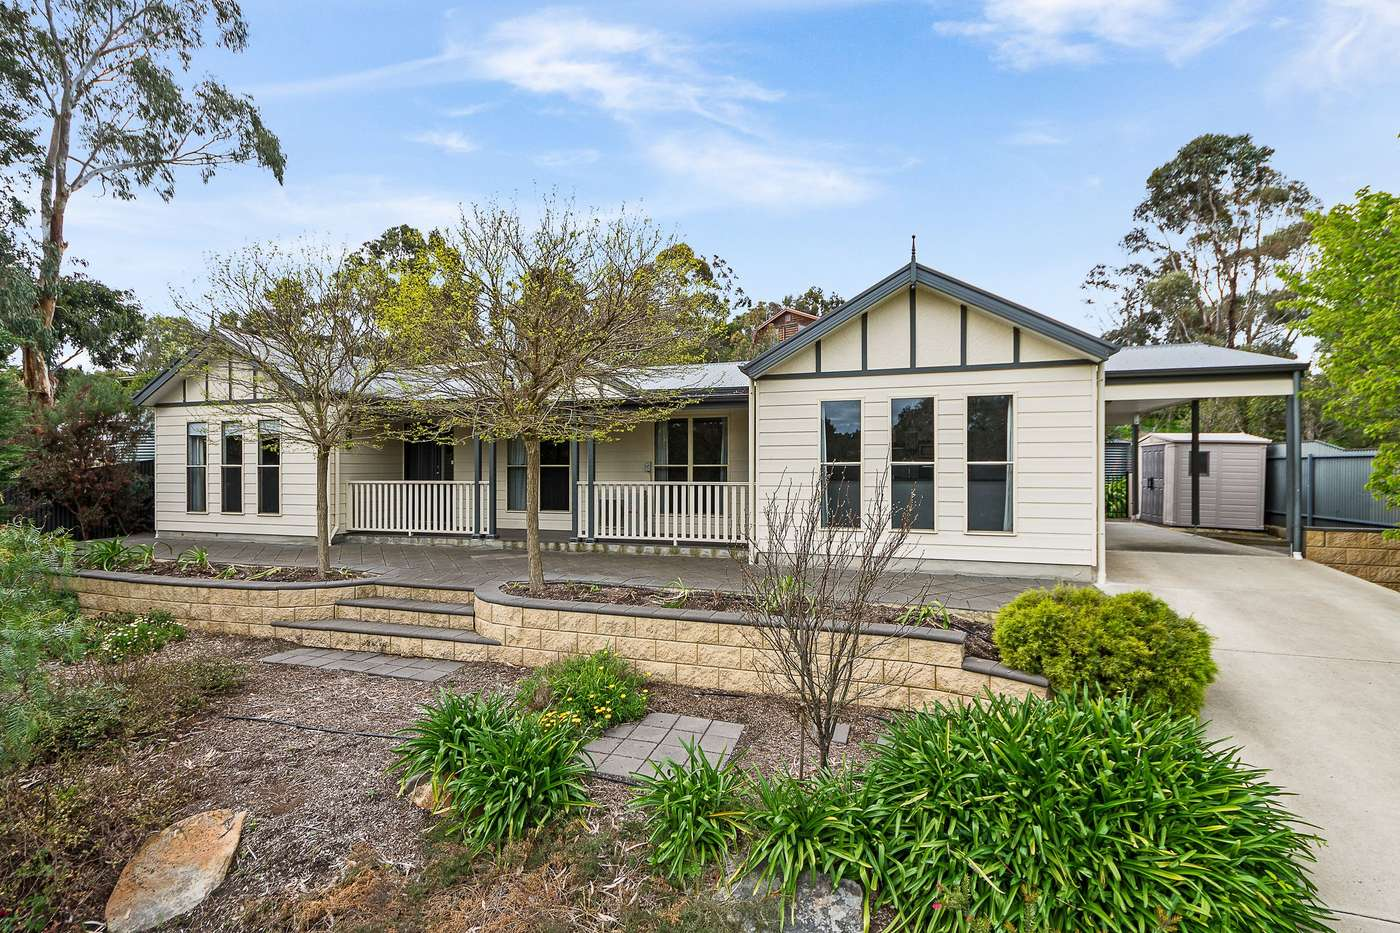 Main view of Homely house listing, 27 Luck Street, Macclesfield, SA 5153